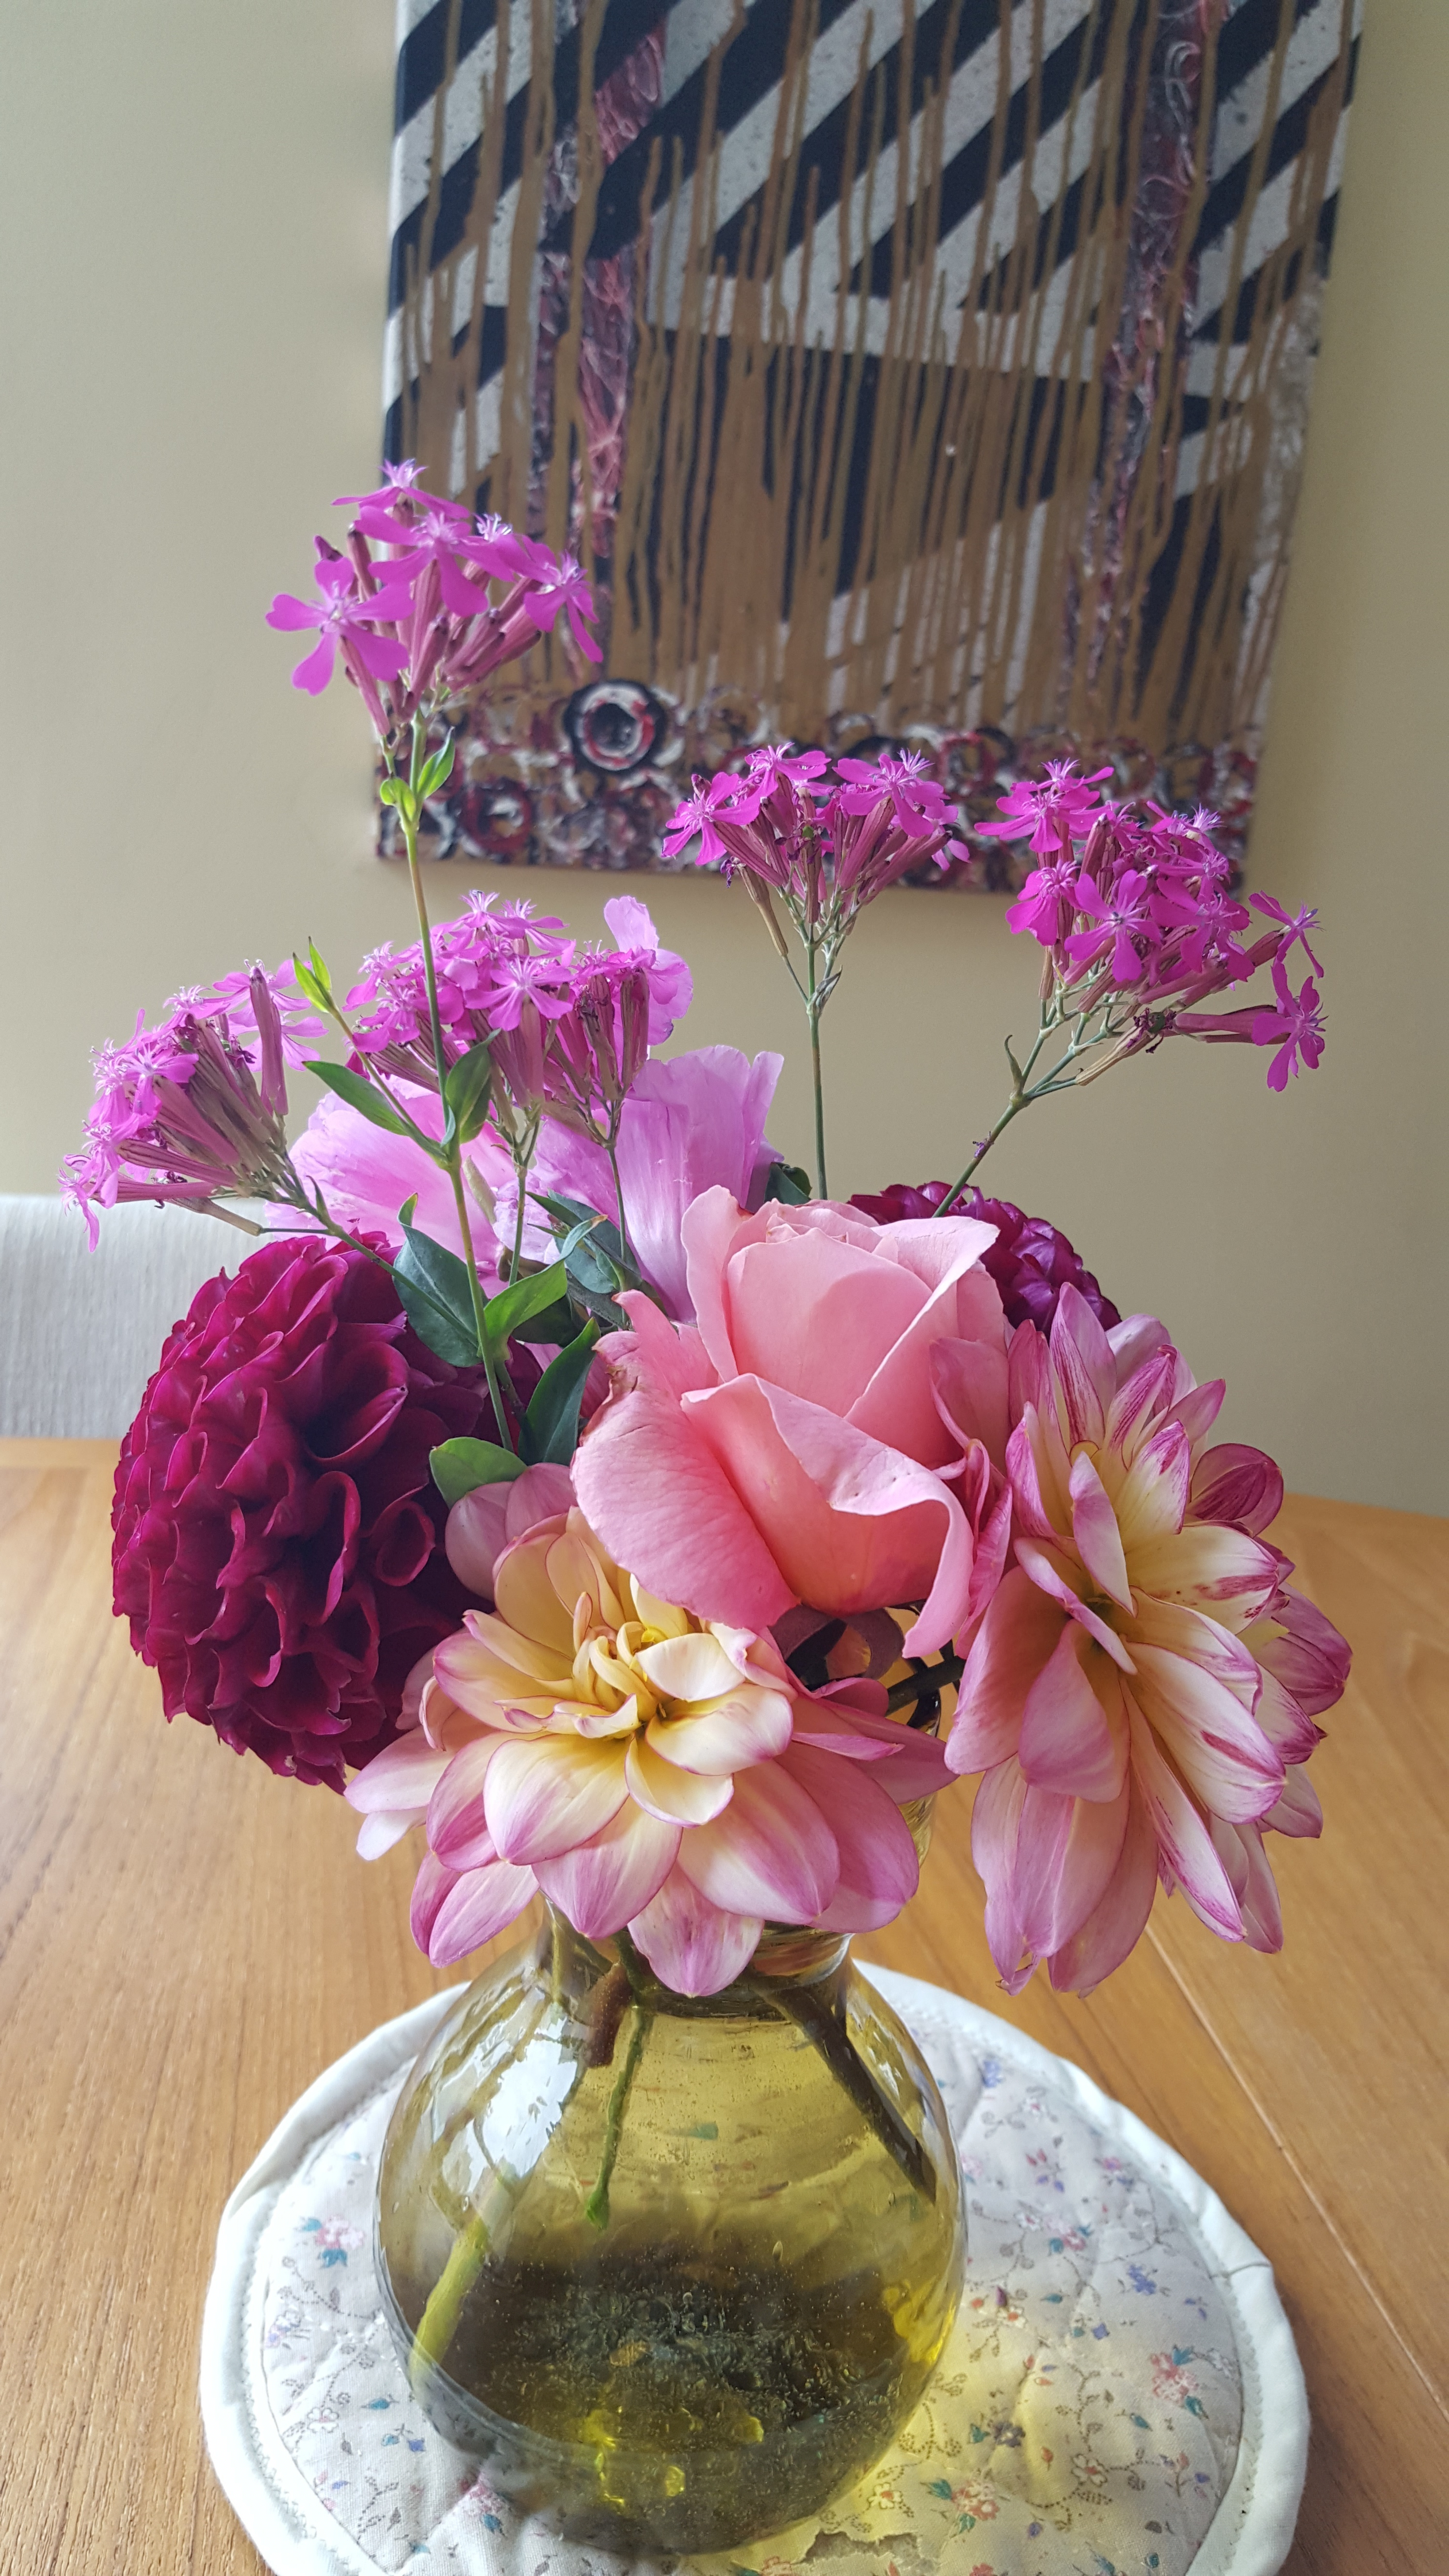 Flower bouquet from FMCG, pink and purple